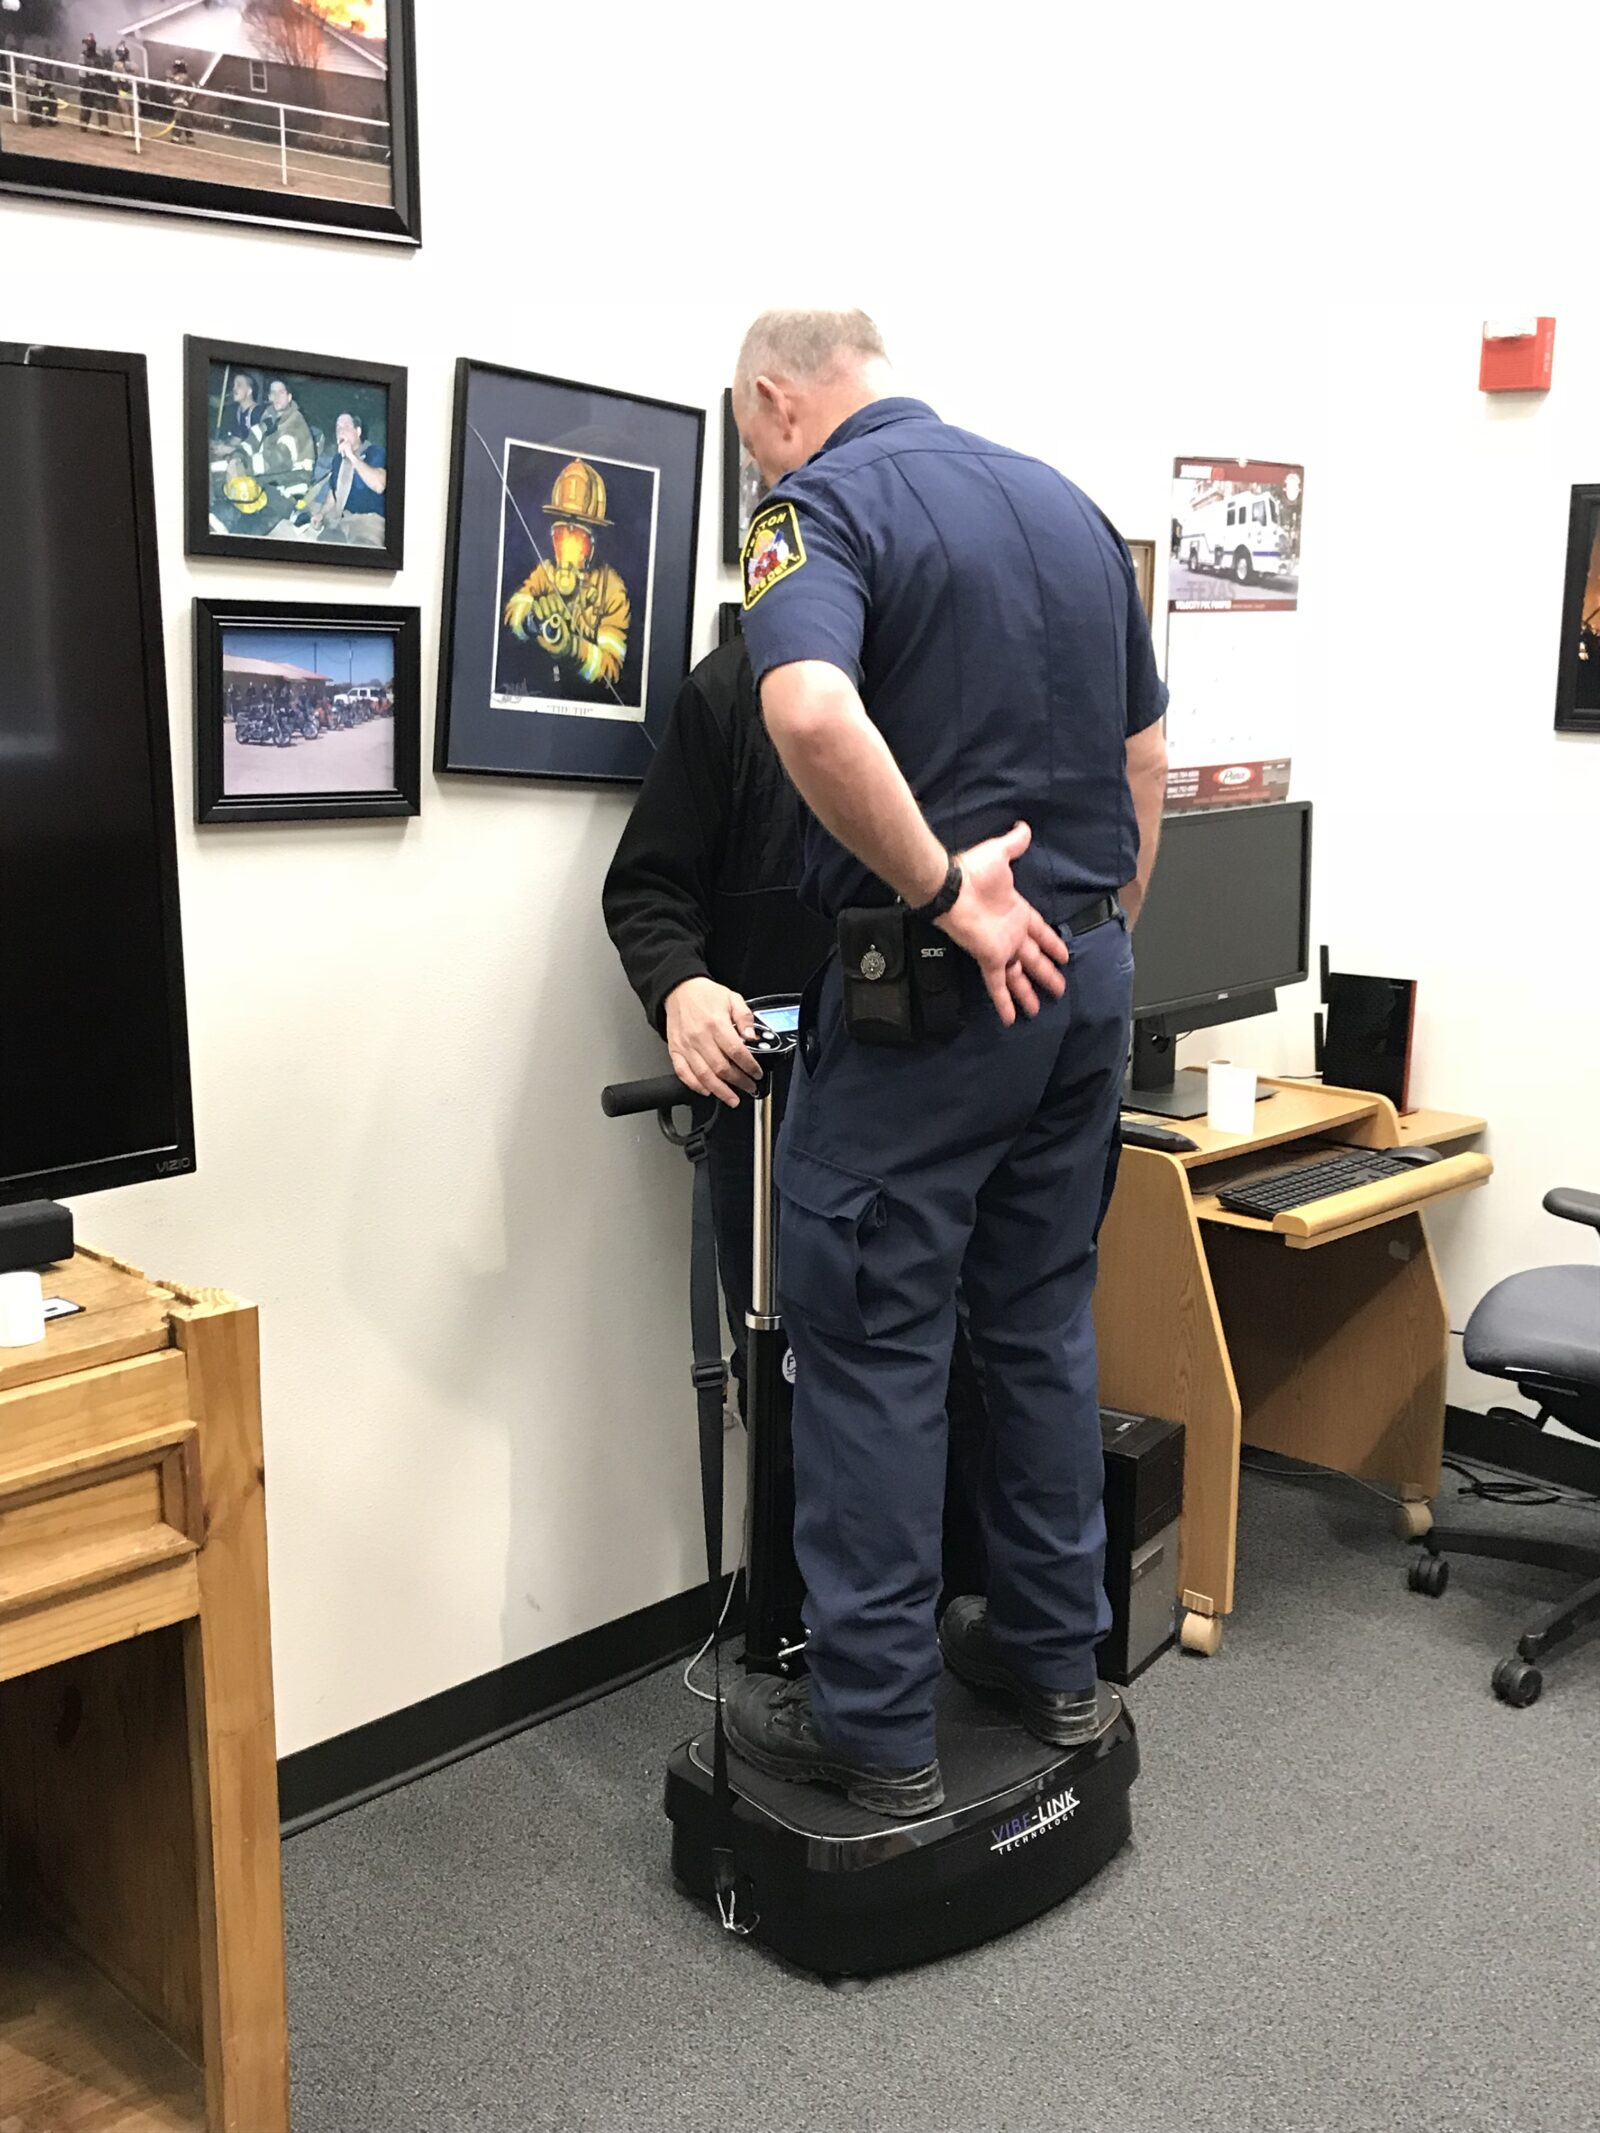 Battalion Chief, David Boots Experiencing Central fire Station's Very Own Vibe-Link Technology!